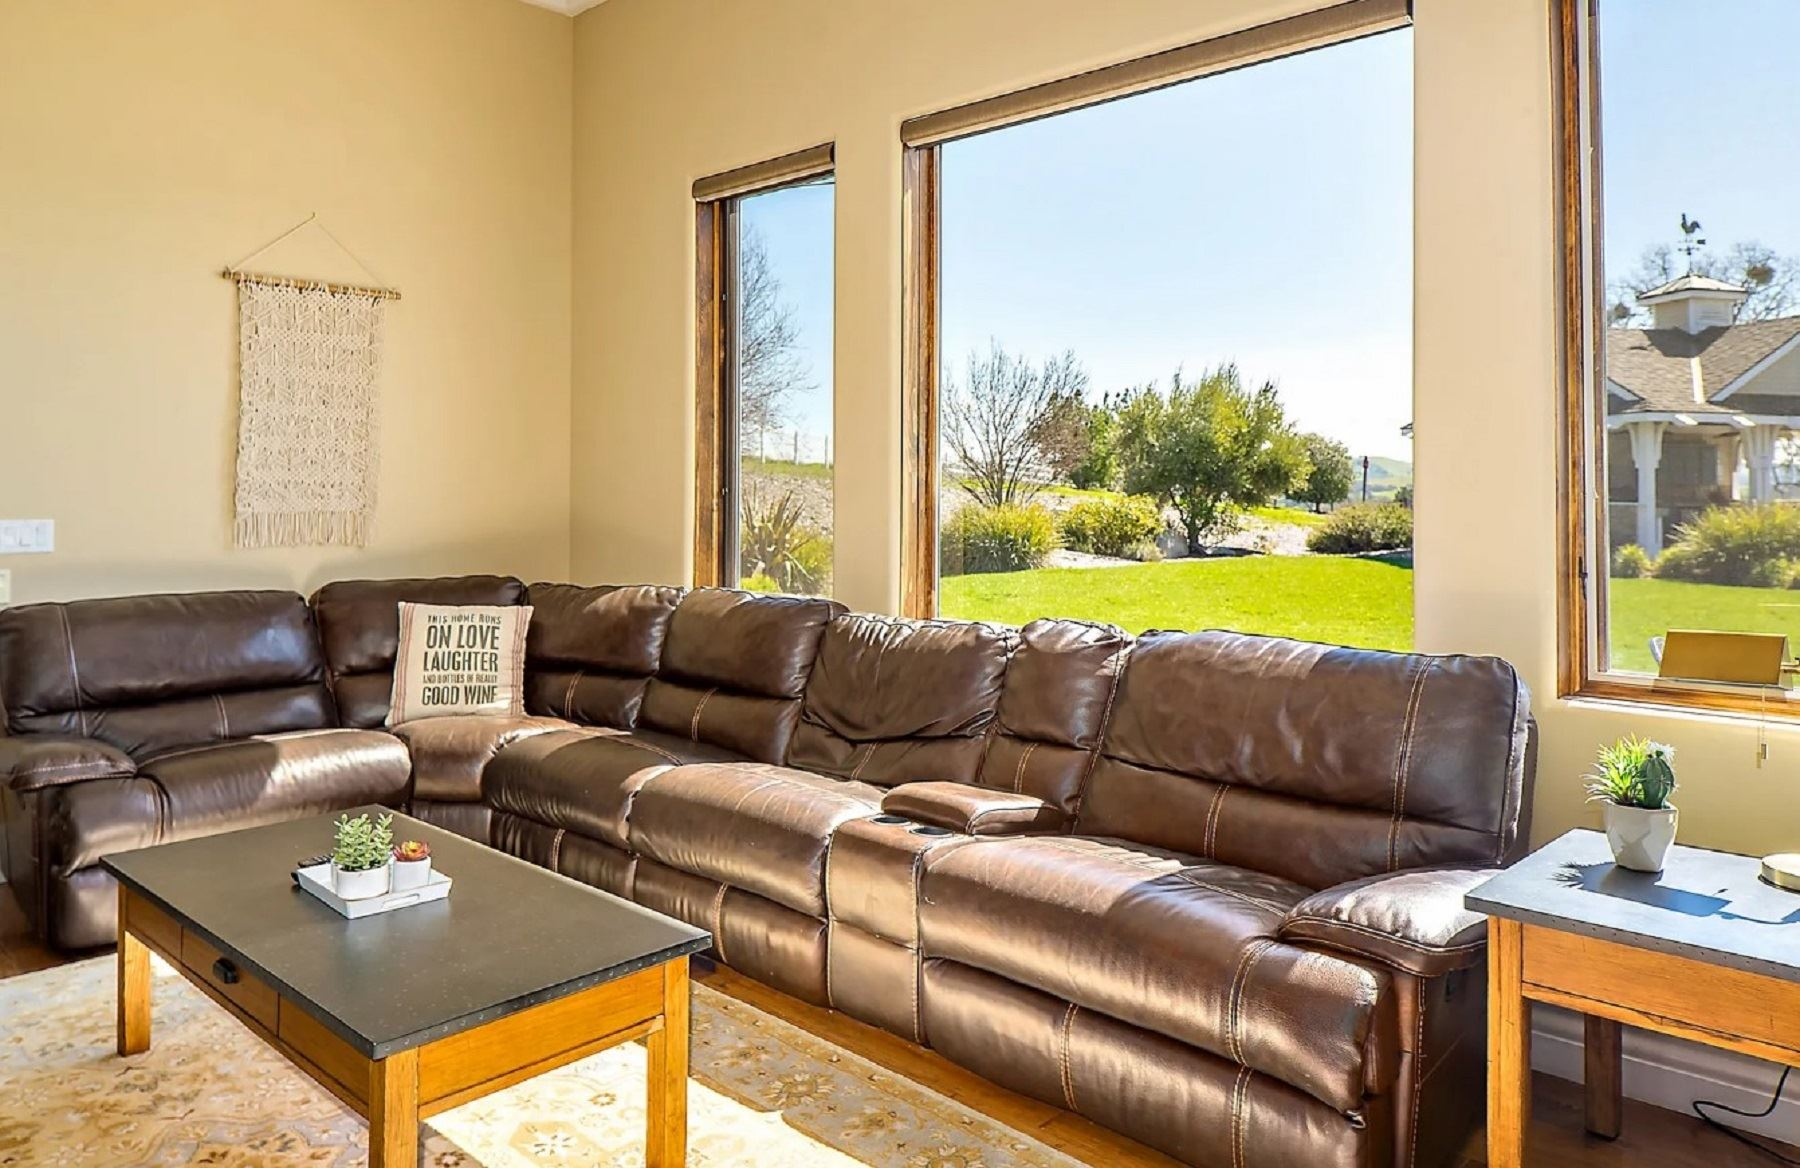 Frontier Farmhouse - Interior - Extra large leather sectional in front of three tall windows